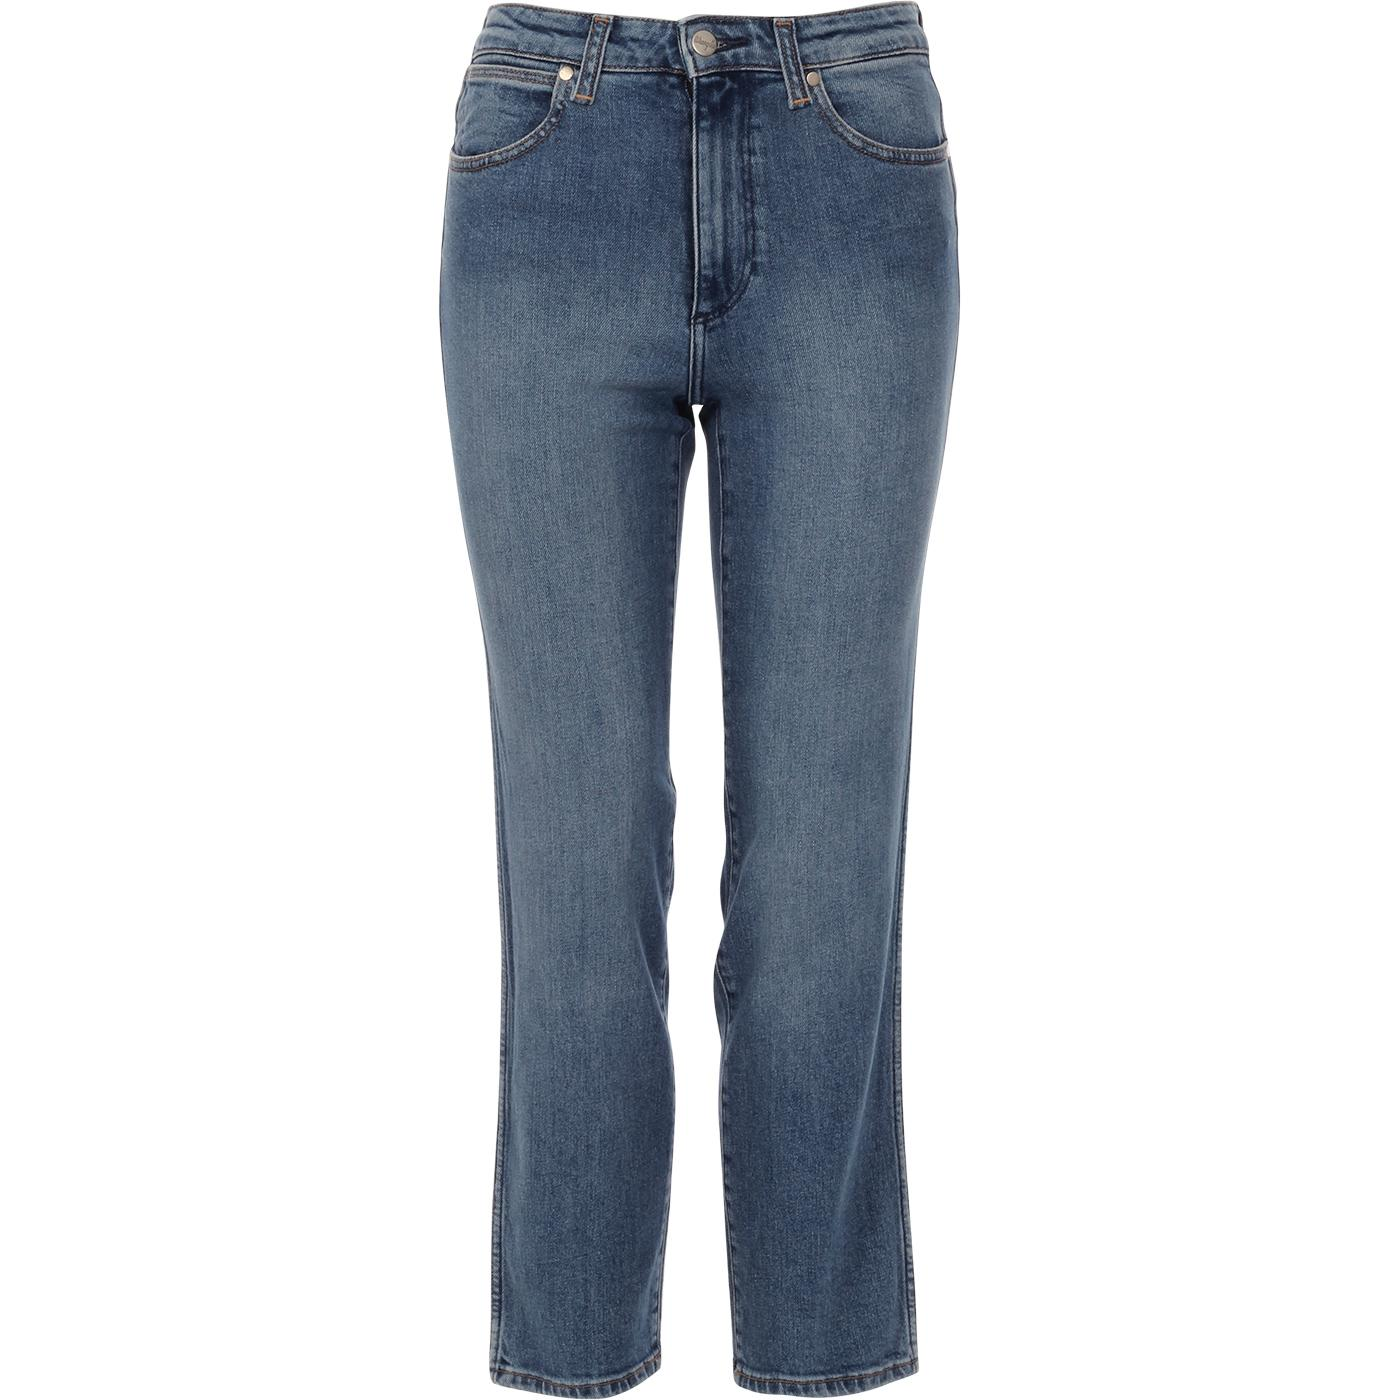 WRANGLER Retro Straight Denim Jeans (Mid Blue)